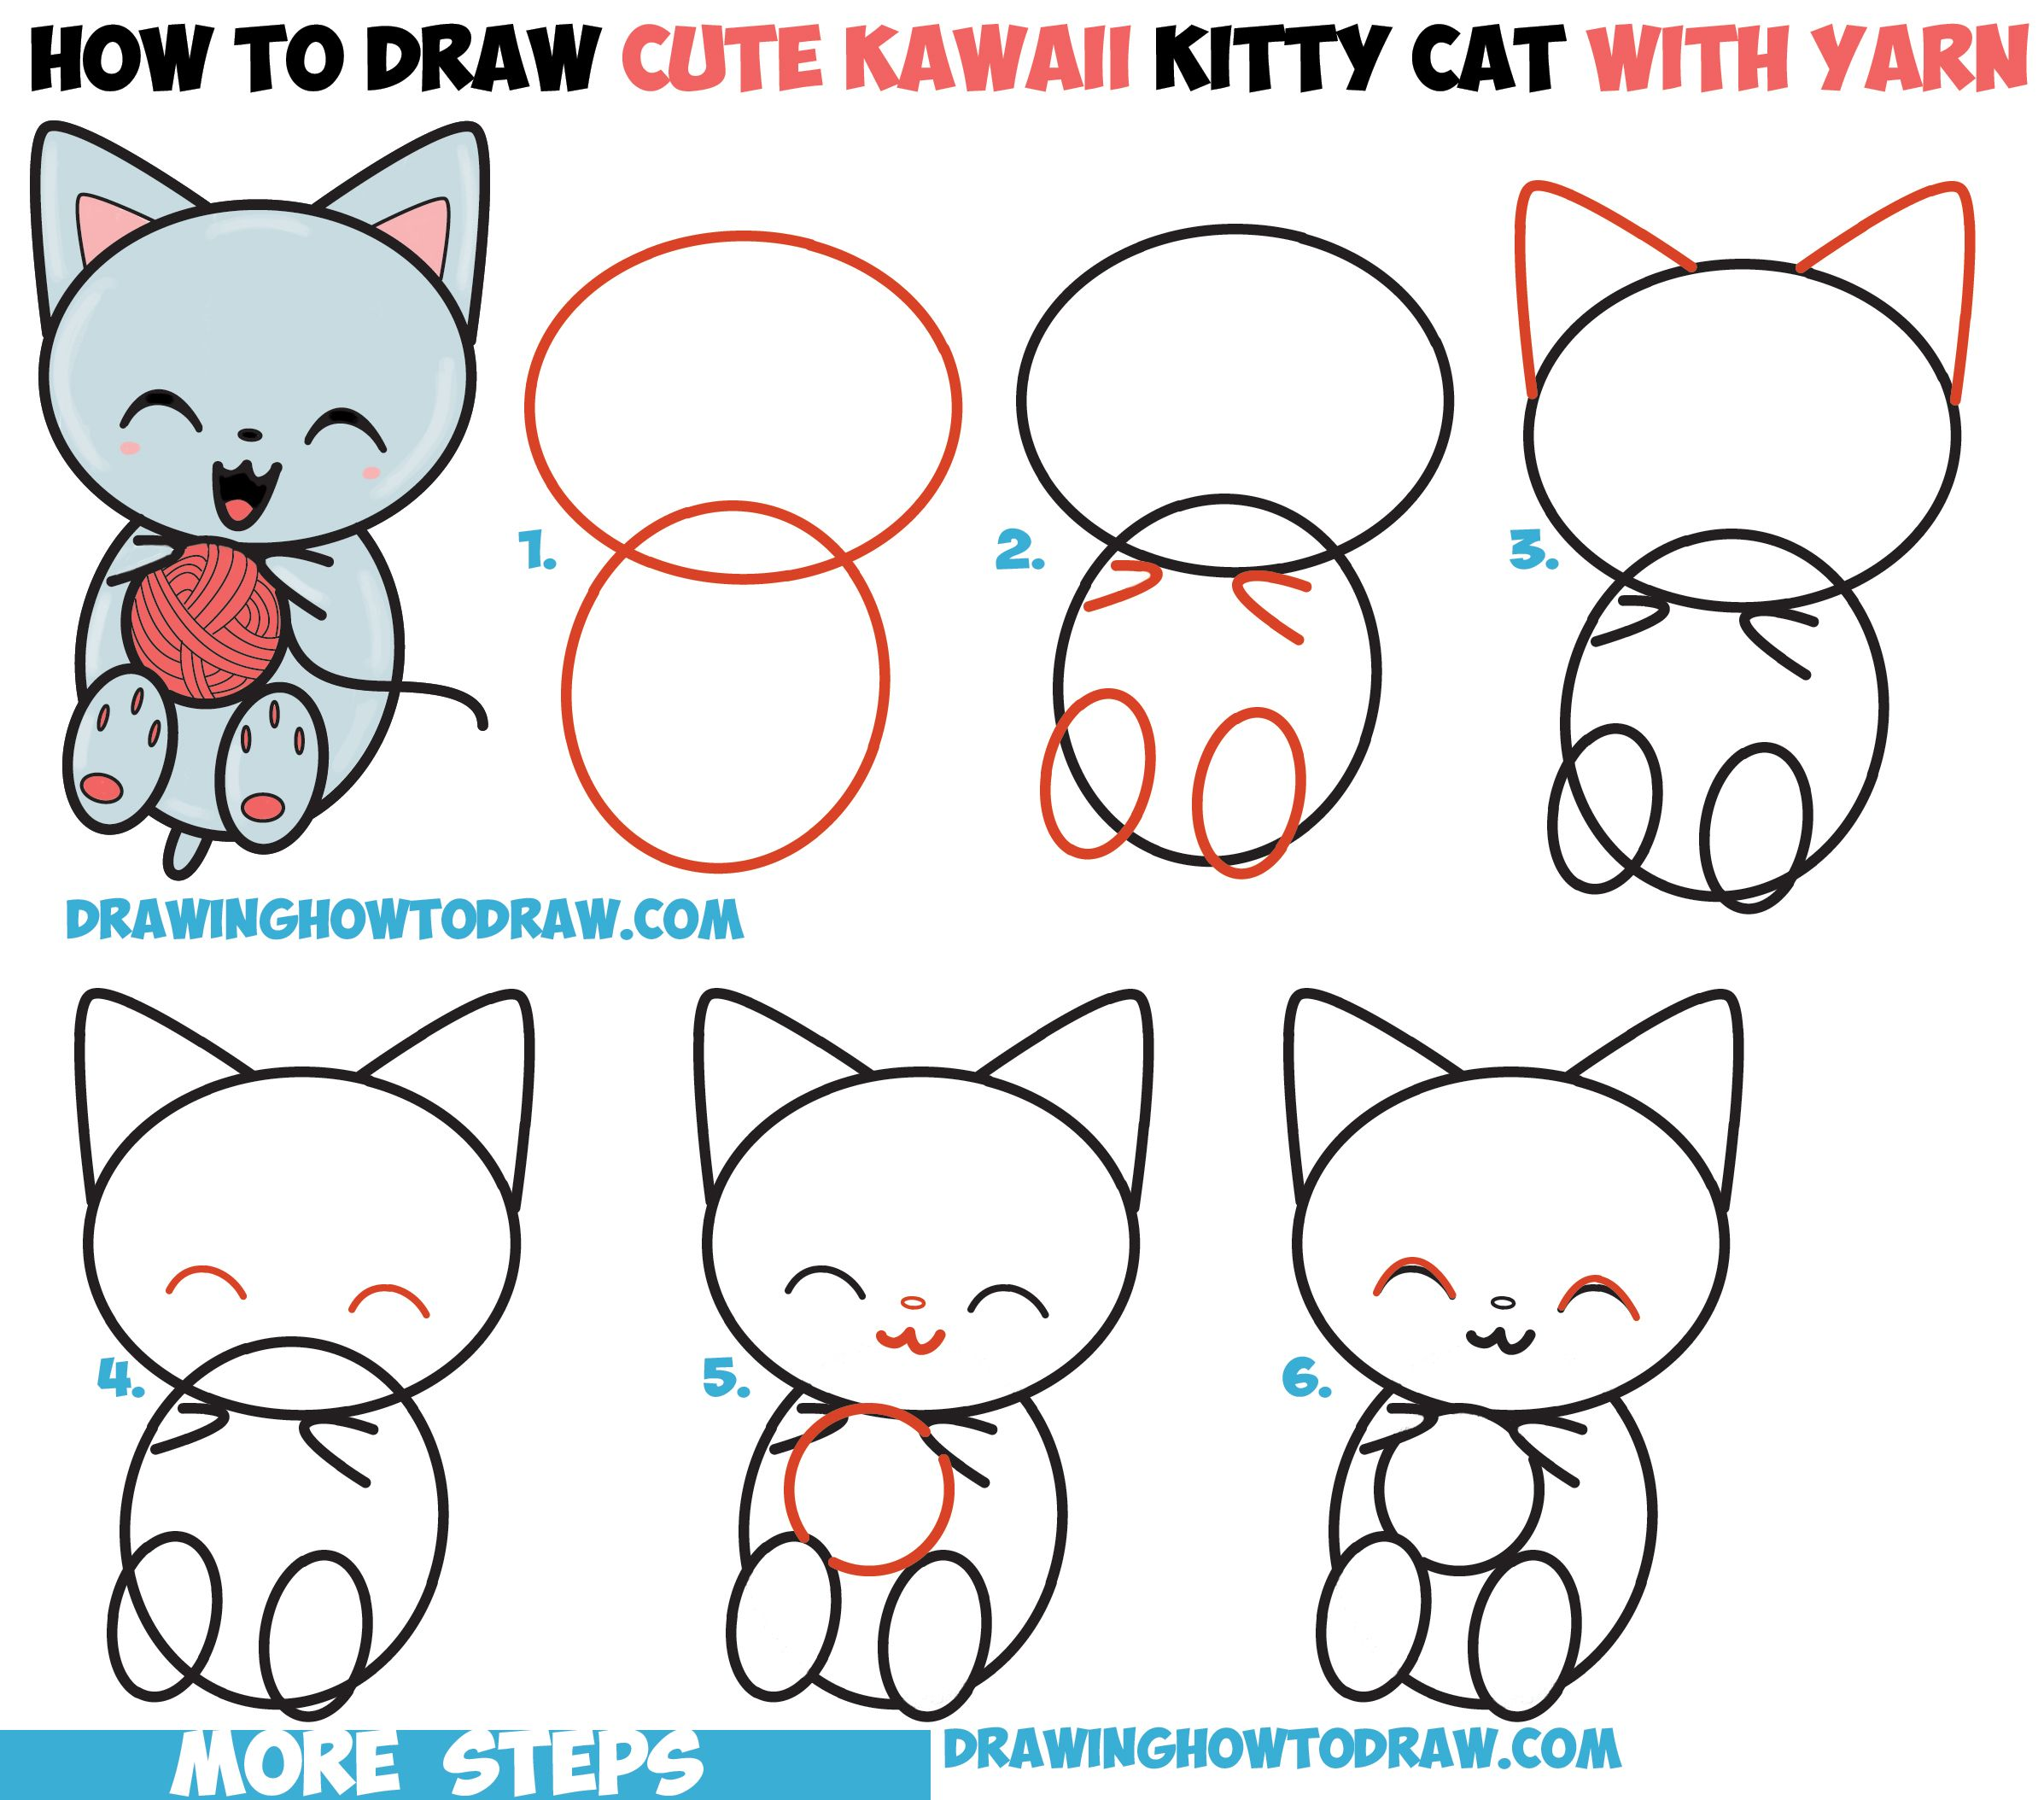 Bathroom drawing for kids - How To Draw Cute Kawaii Kitten Cat Playing With Yarn From Number 8 Shape Easy Step By Step Drawing Tutorial For Kids How To Draw Step By Step Drawing